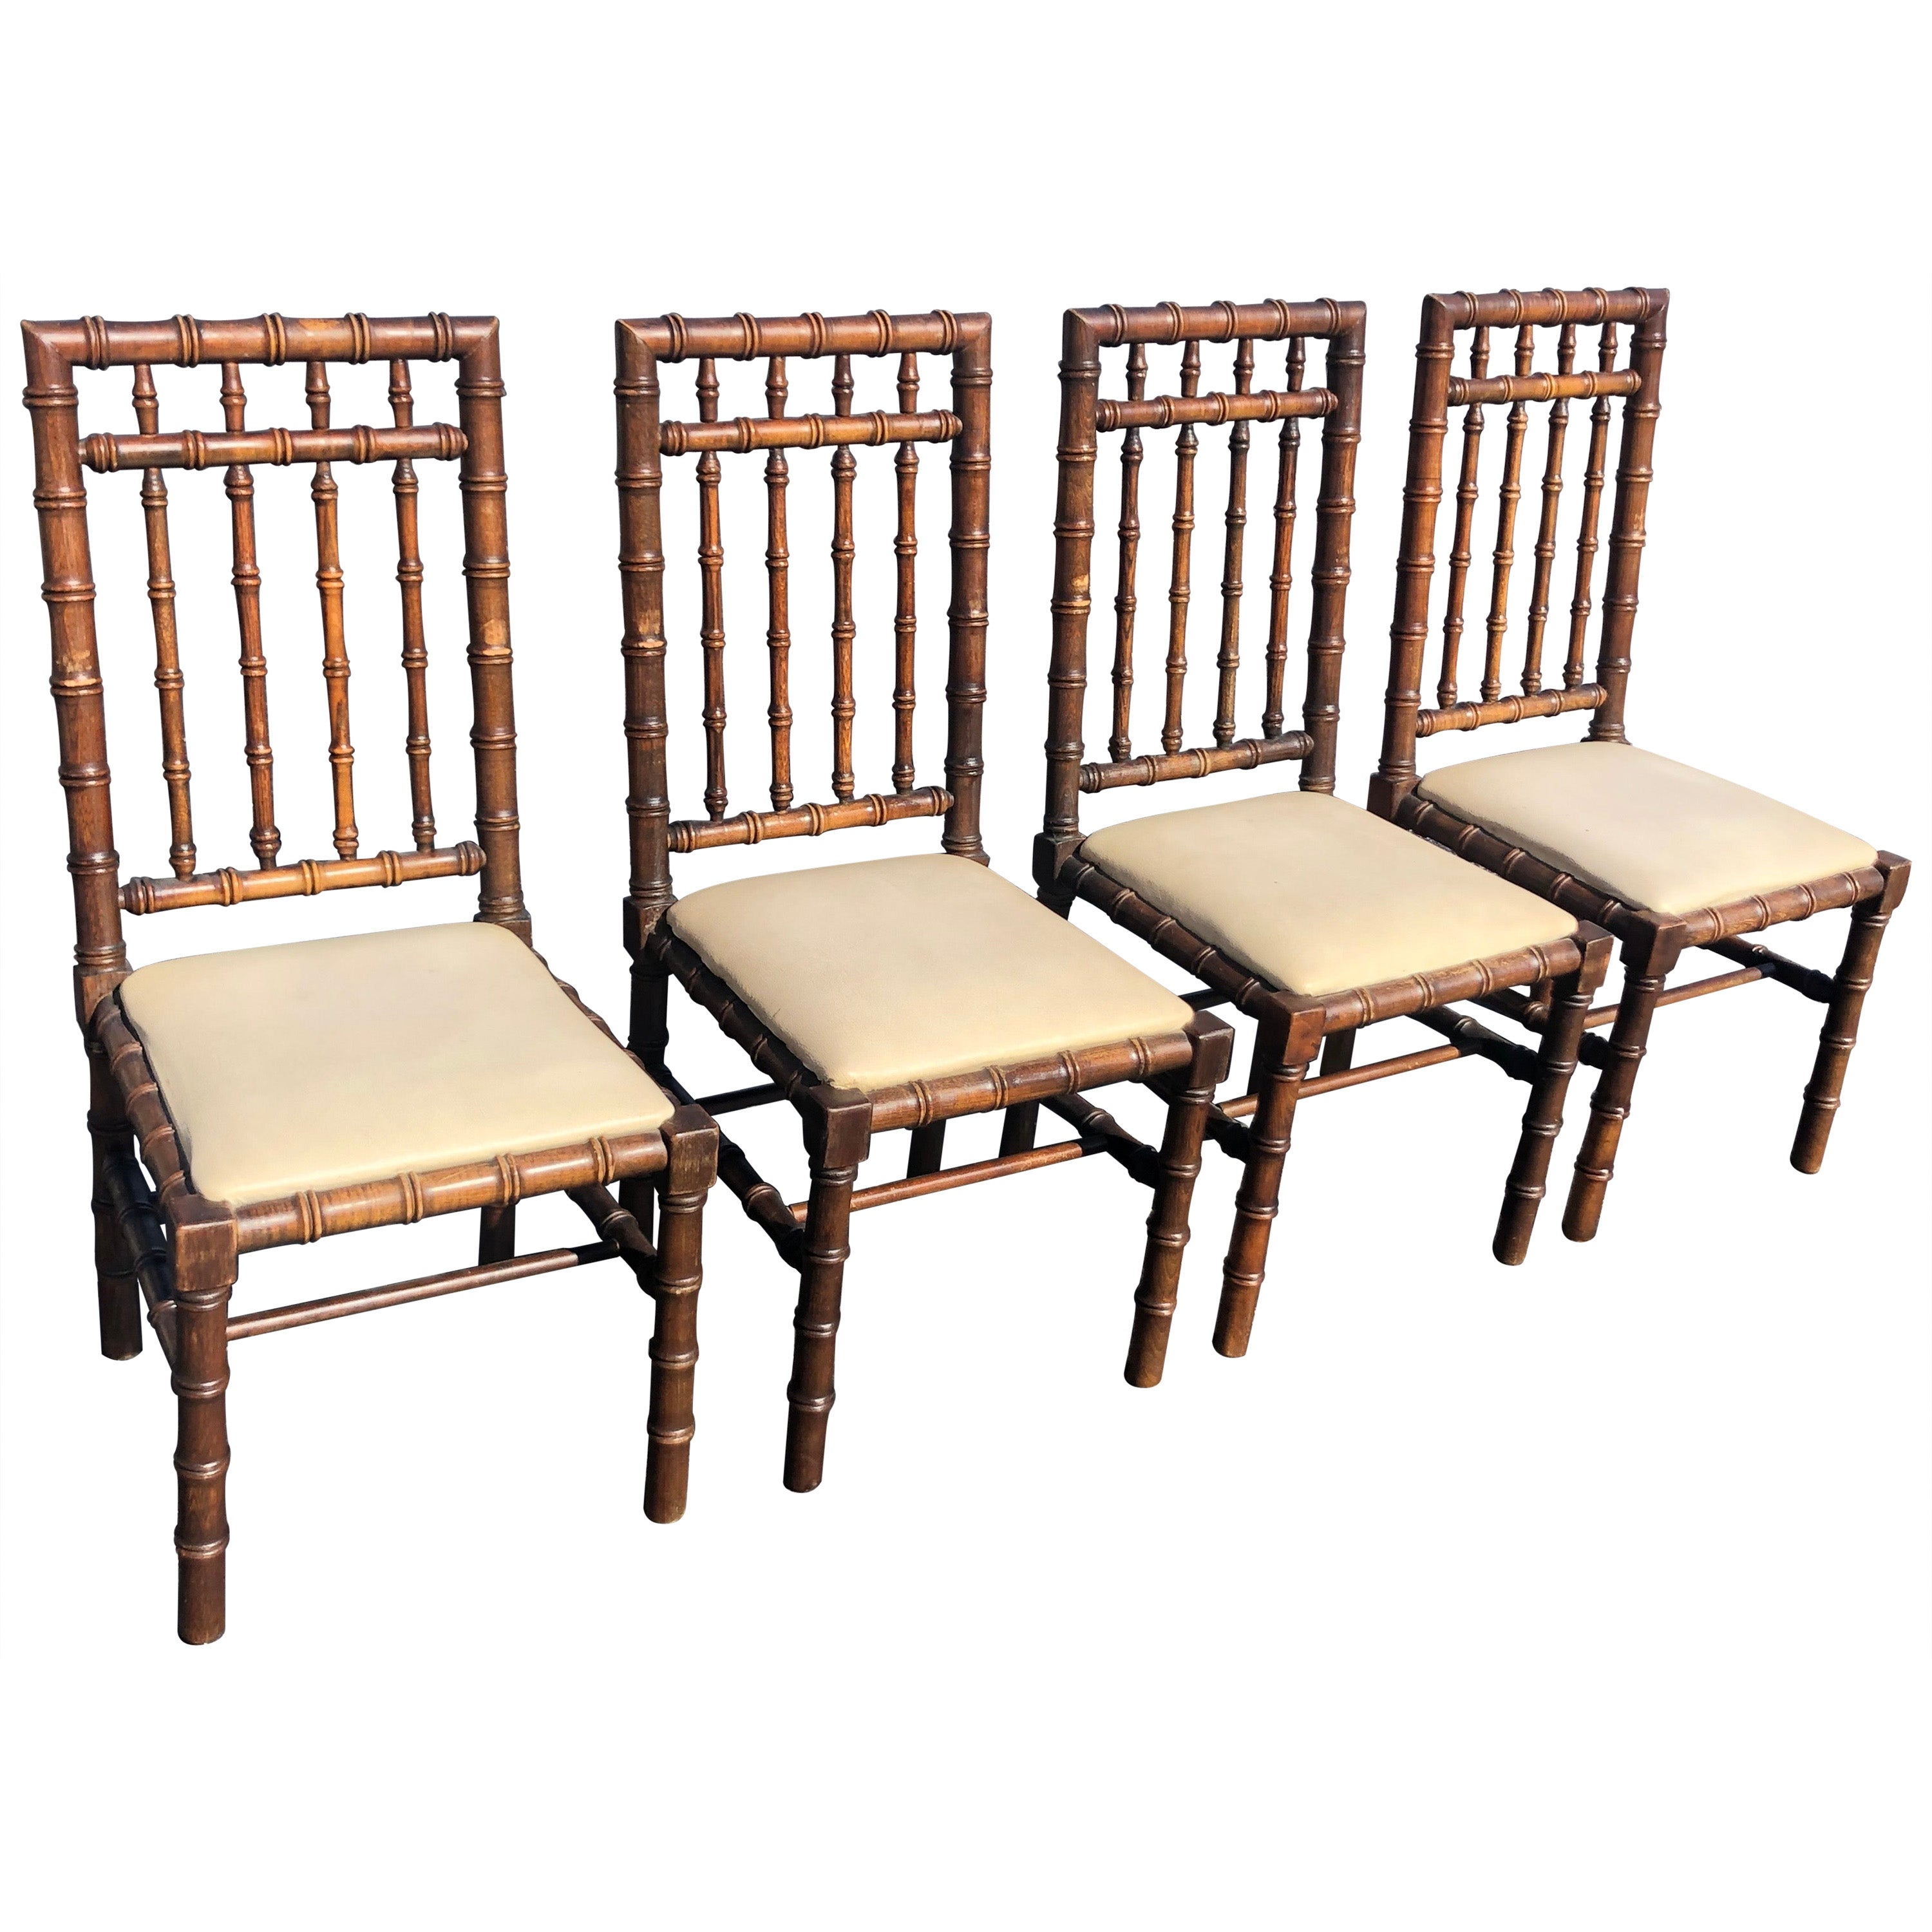 Set of Four Mid Century Faux Bamboo Chairs